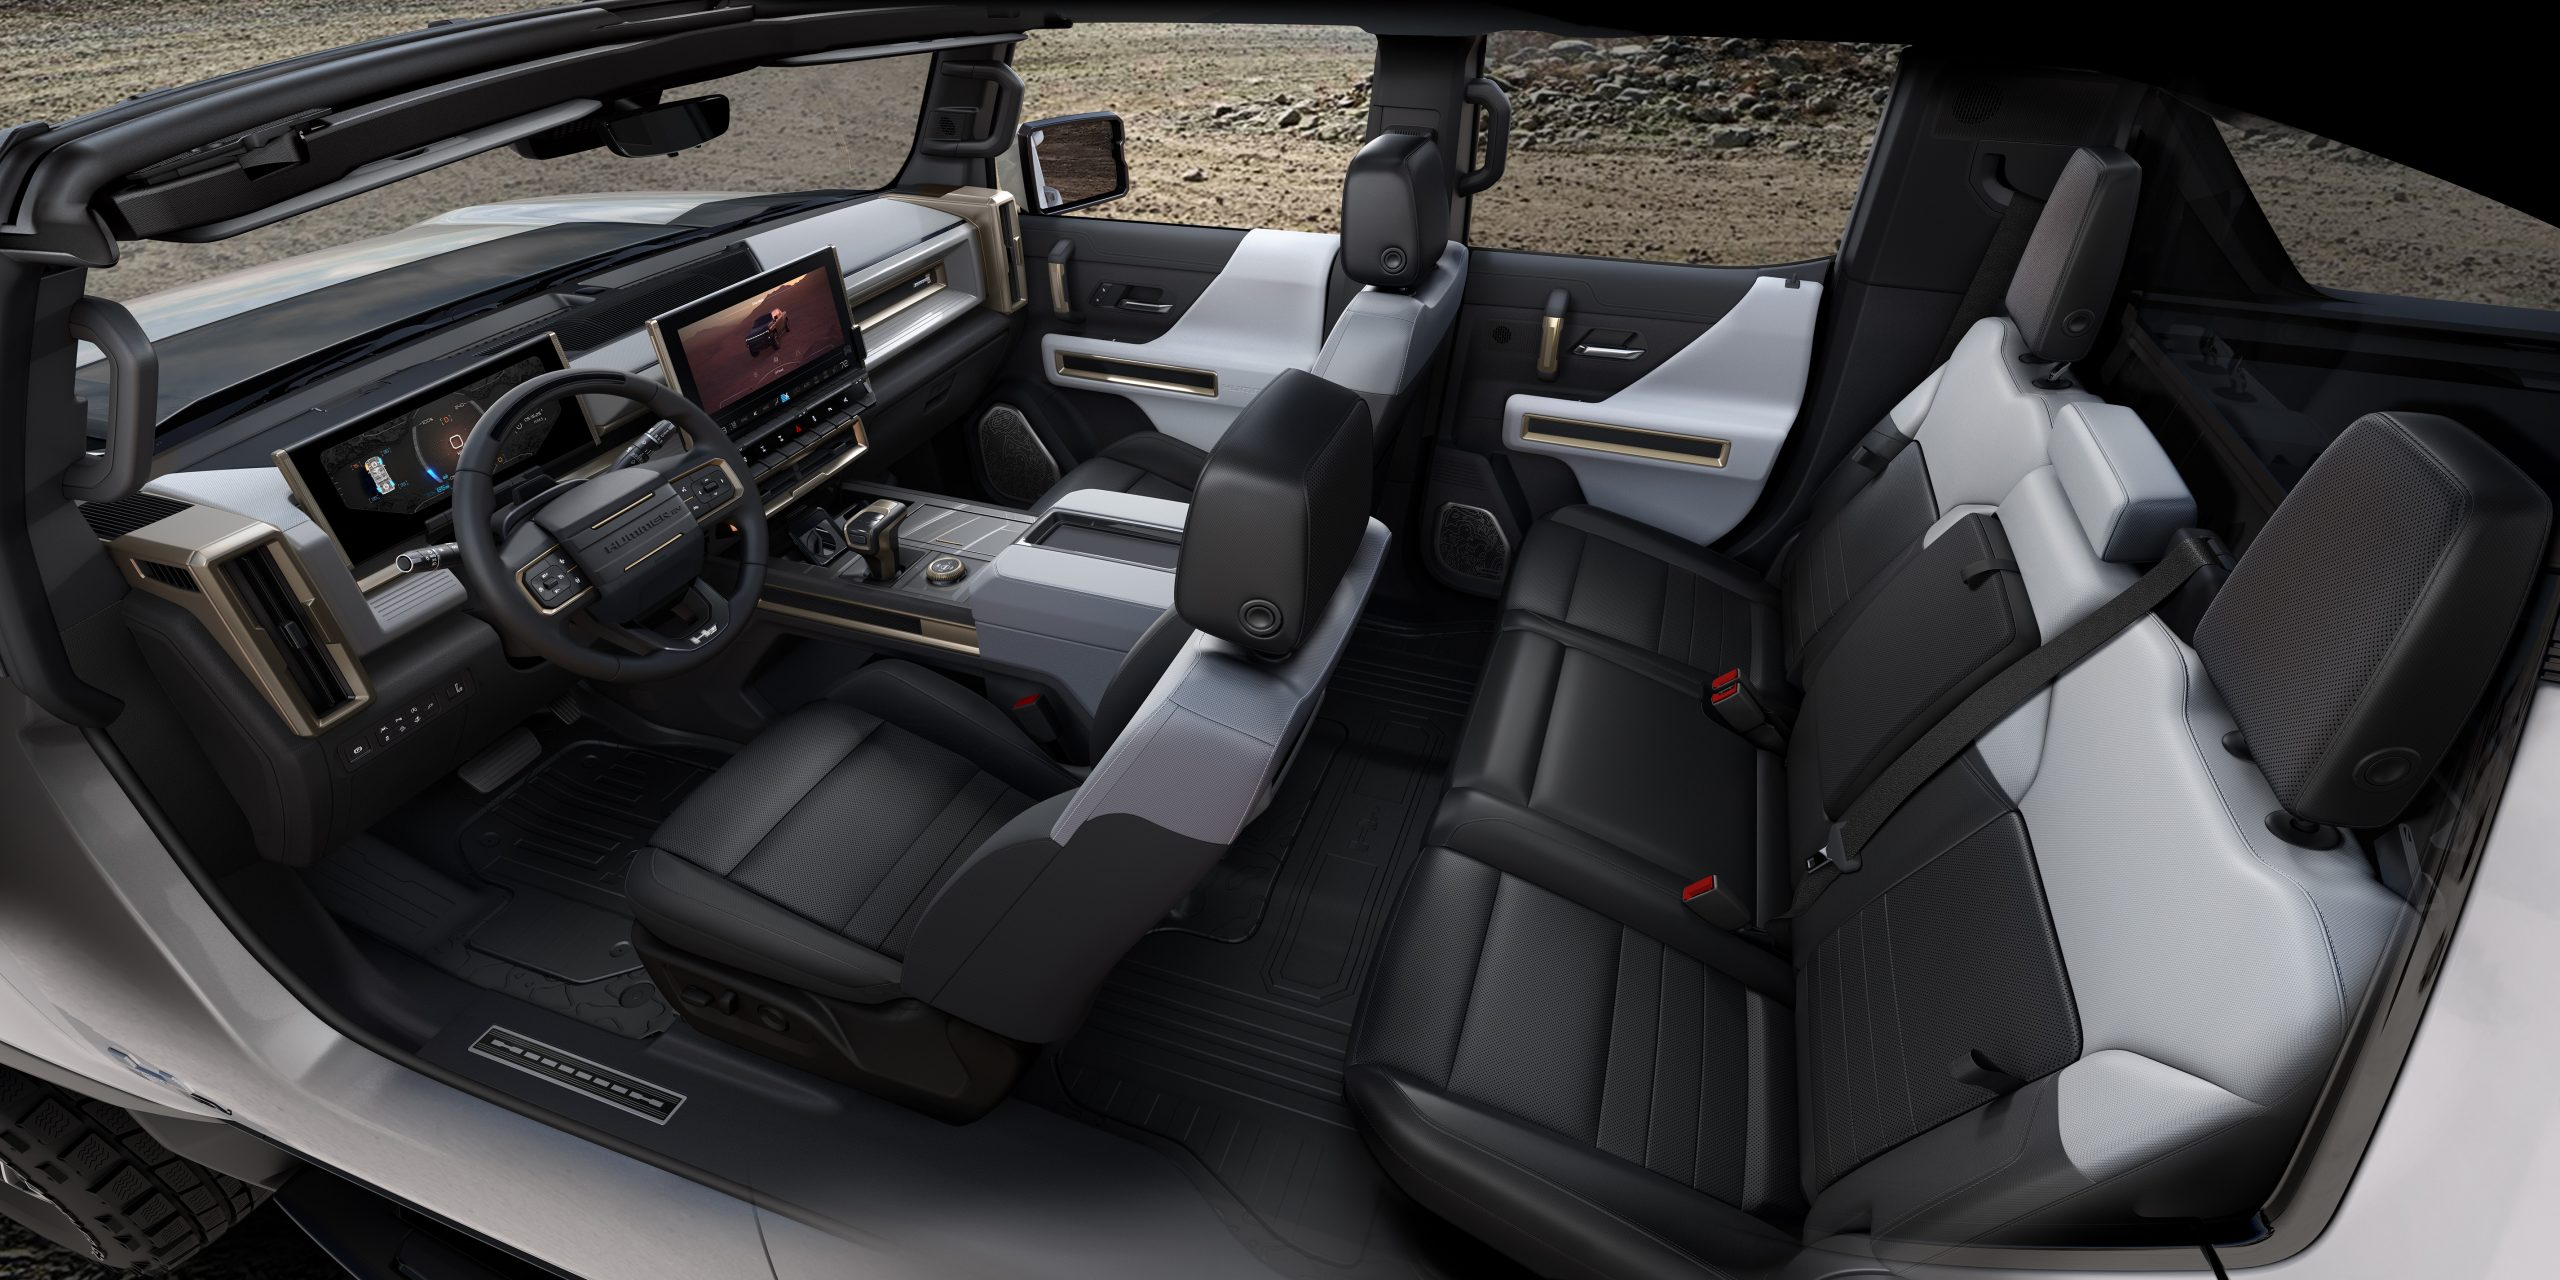 Revealed 2022 Hummer Ev Packs 1000 Hp Edition 1 Will